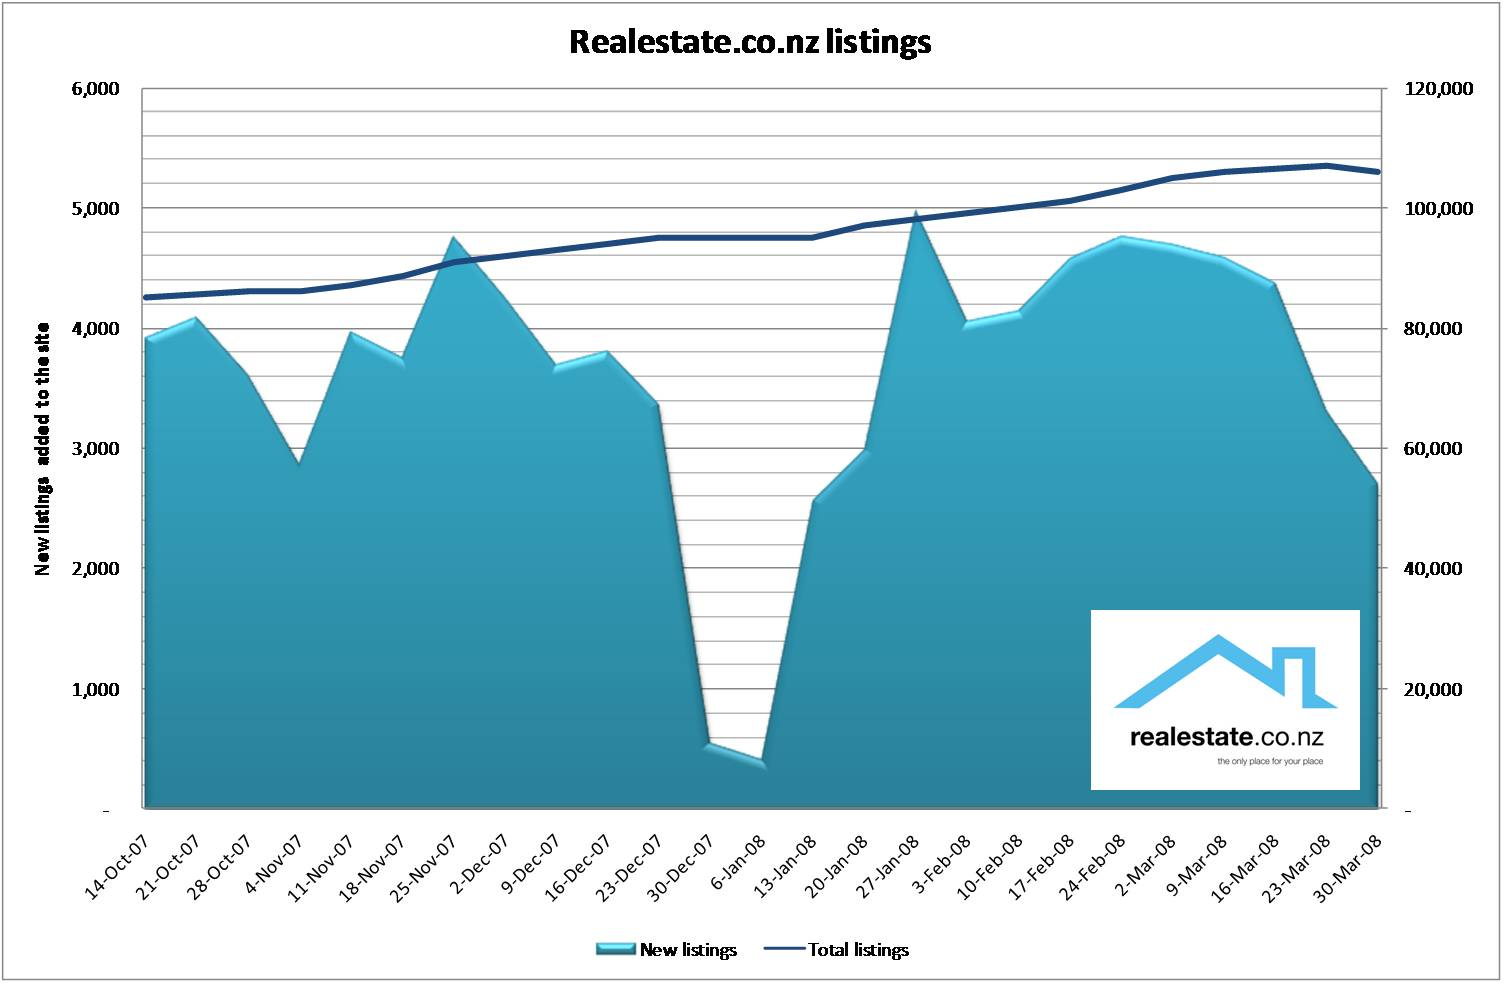 NZ New property listings show signs of slowing